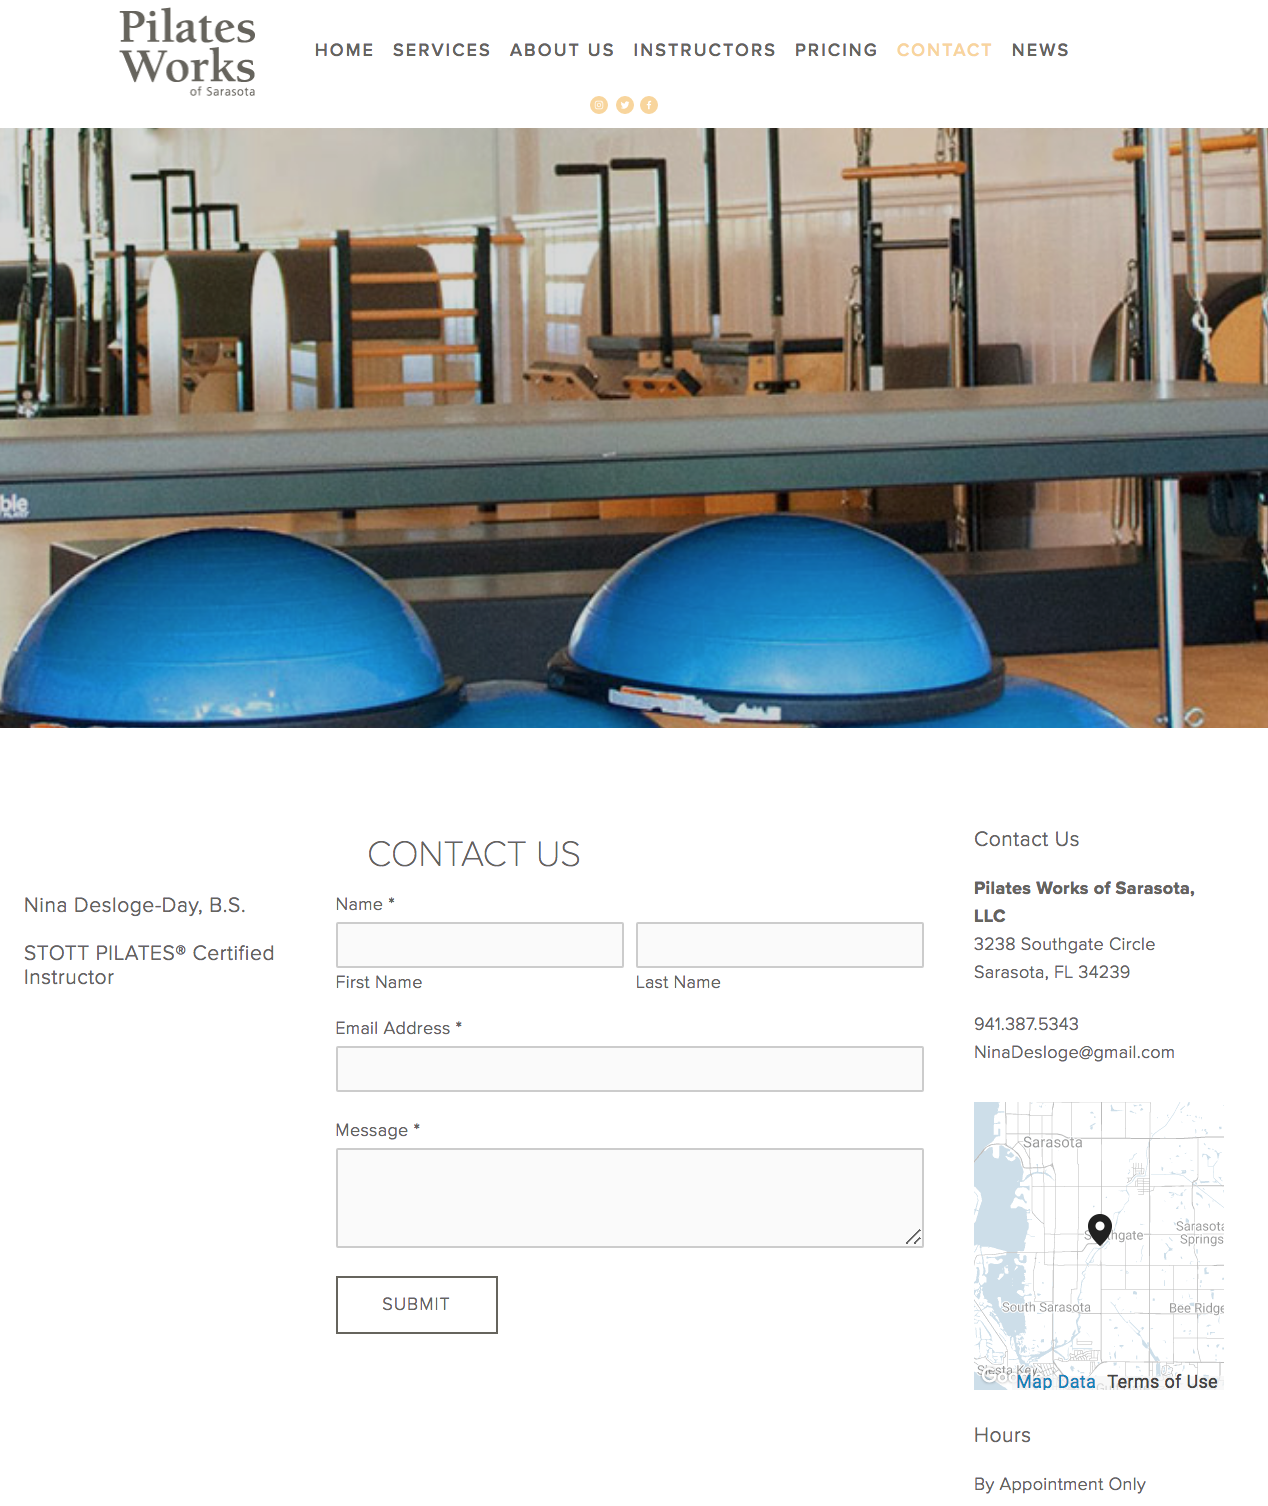 pilates-works-of-sarasota-contact-page.png